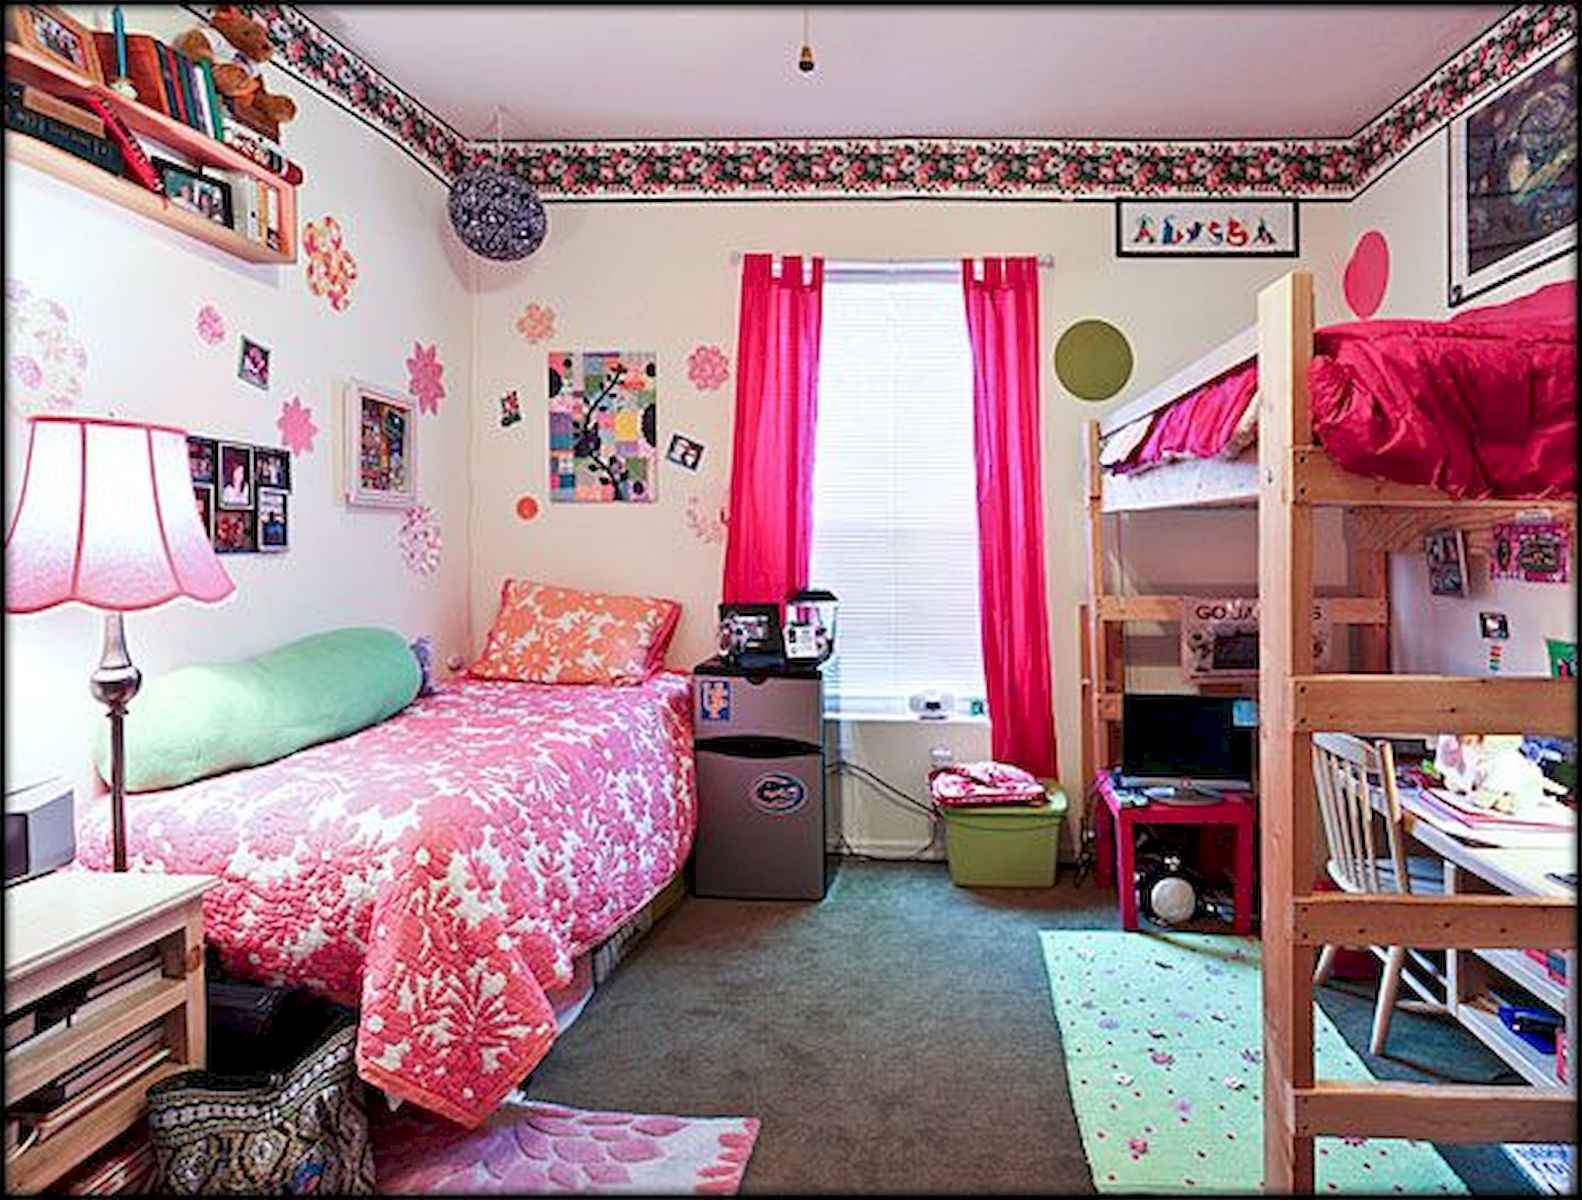 60 Gorgeous College Dorm Room Decorating Ideas And Makeover (27)